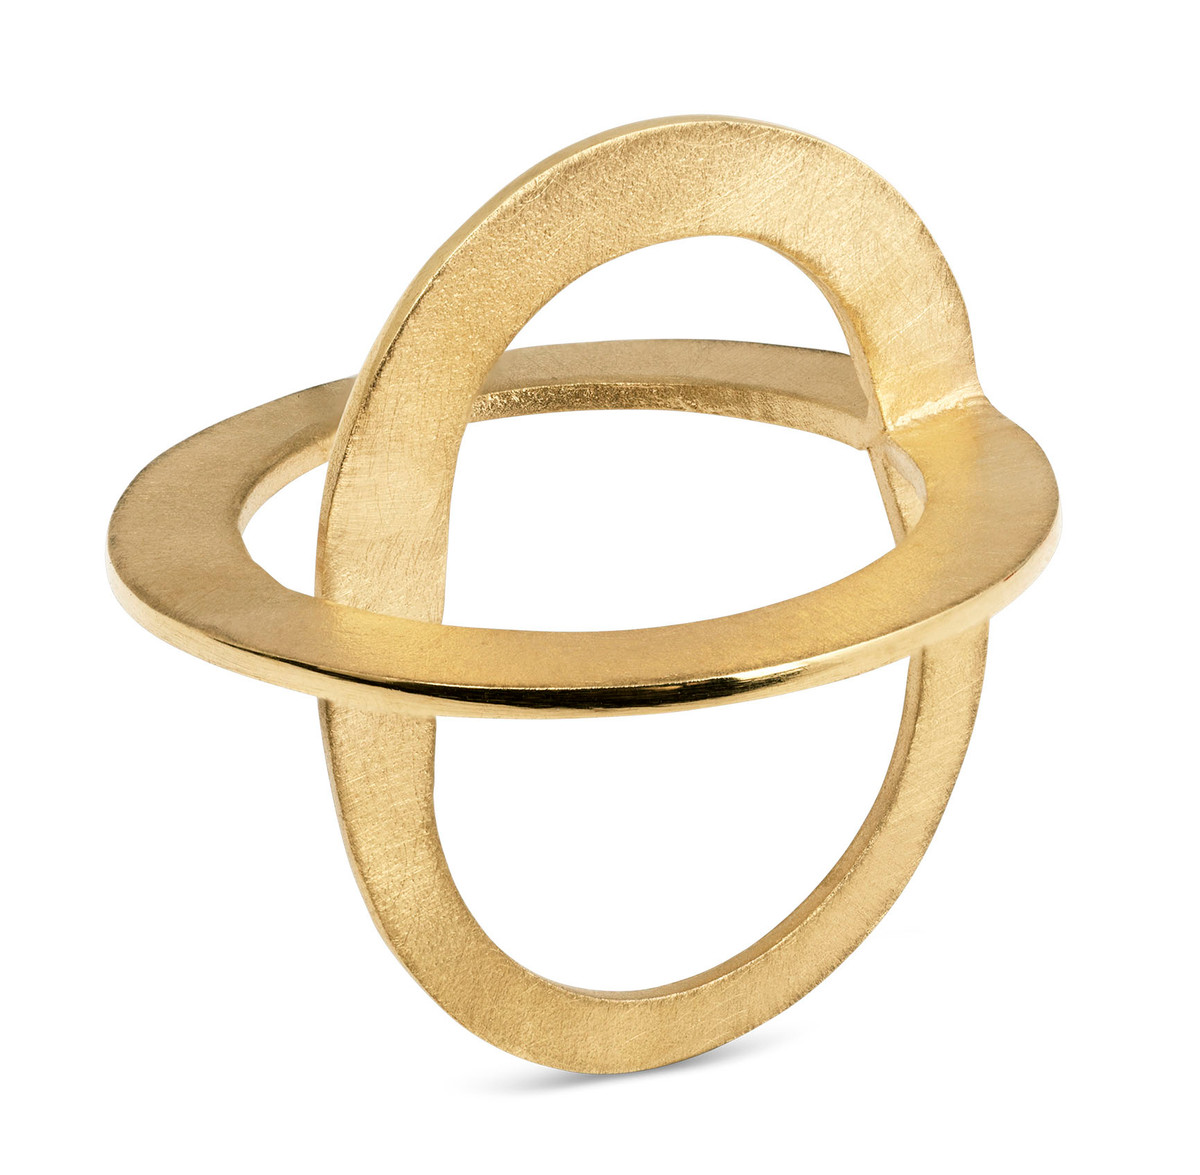 Joidart Cercles Gold Ring Size 8